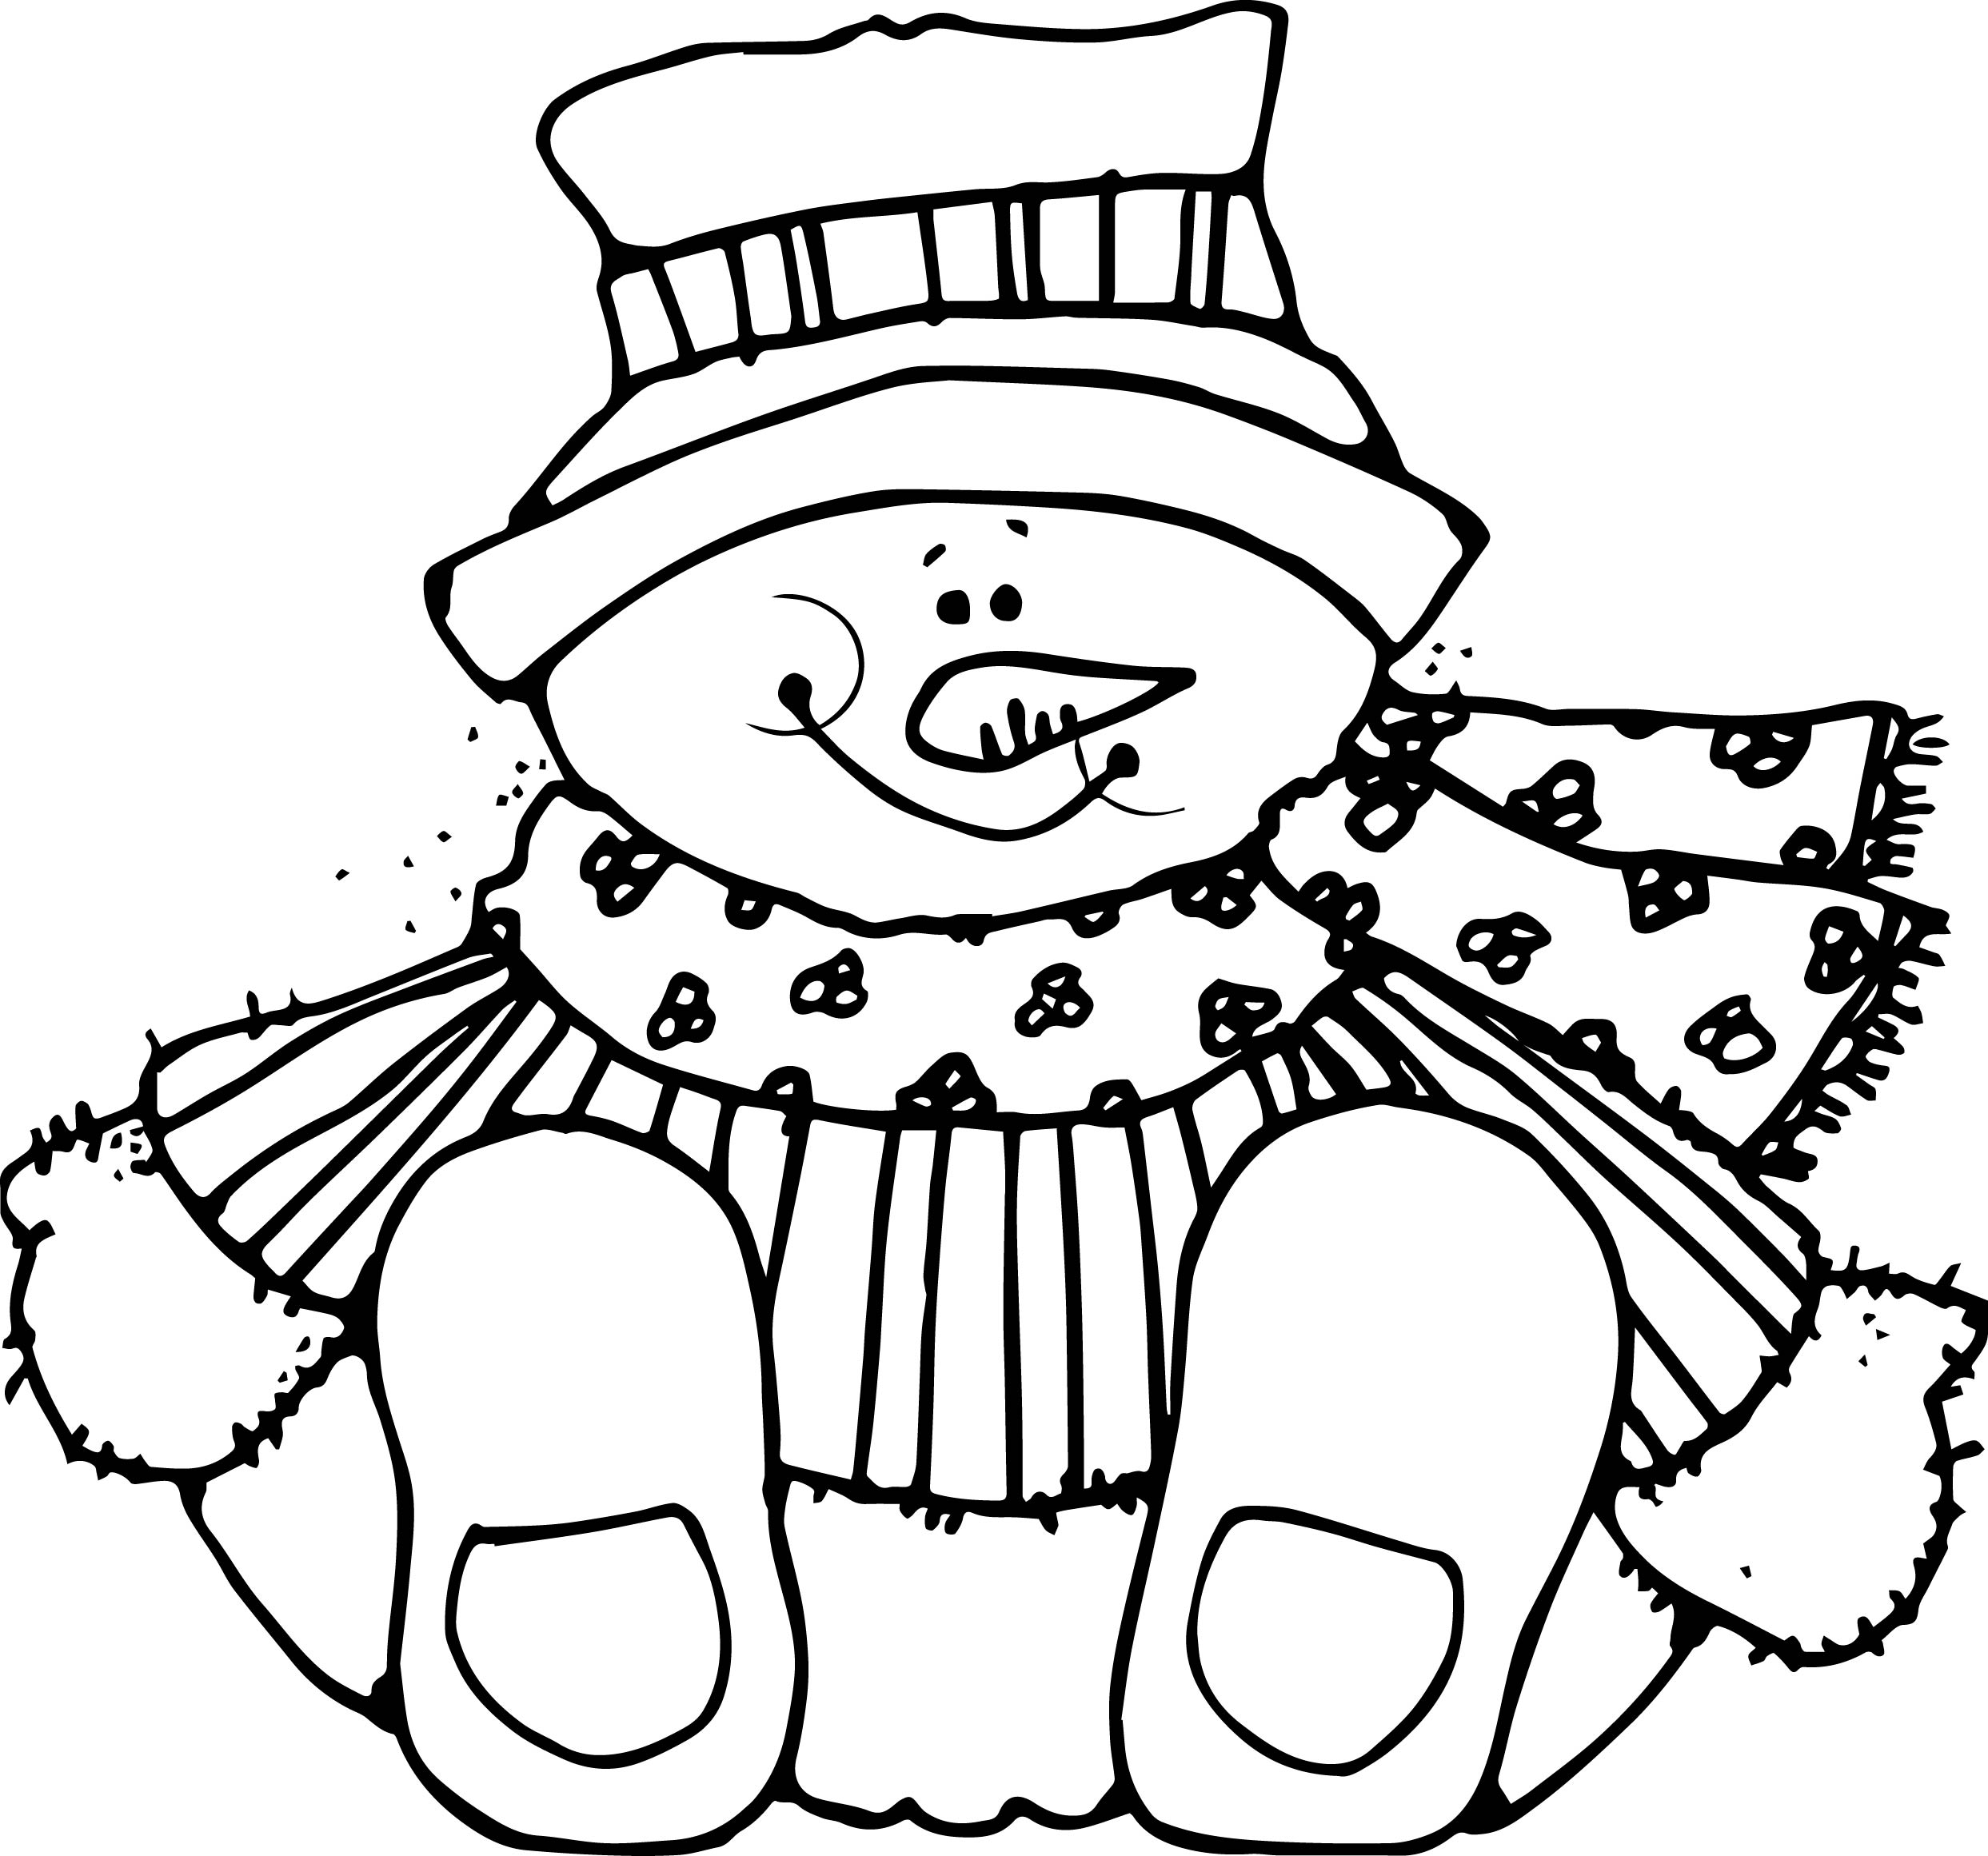 2486x2321 Dj Inkers Winter Coloring Page Wecoloringpage